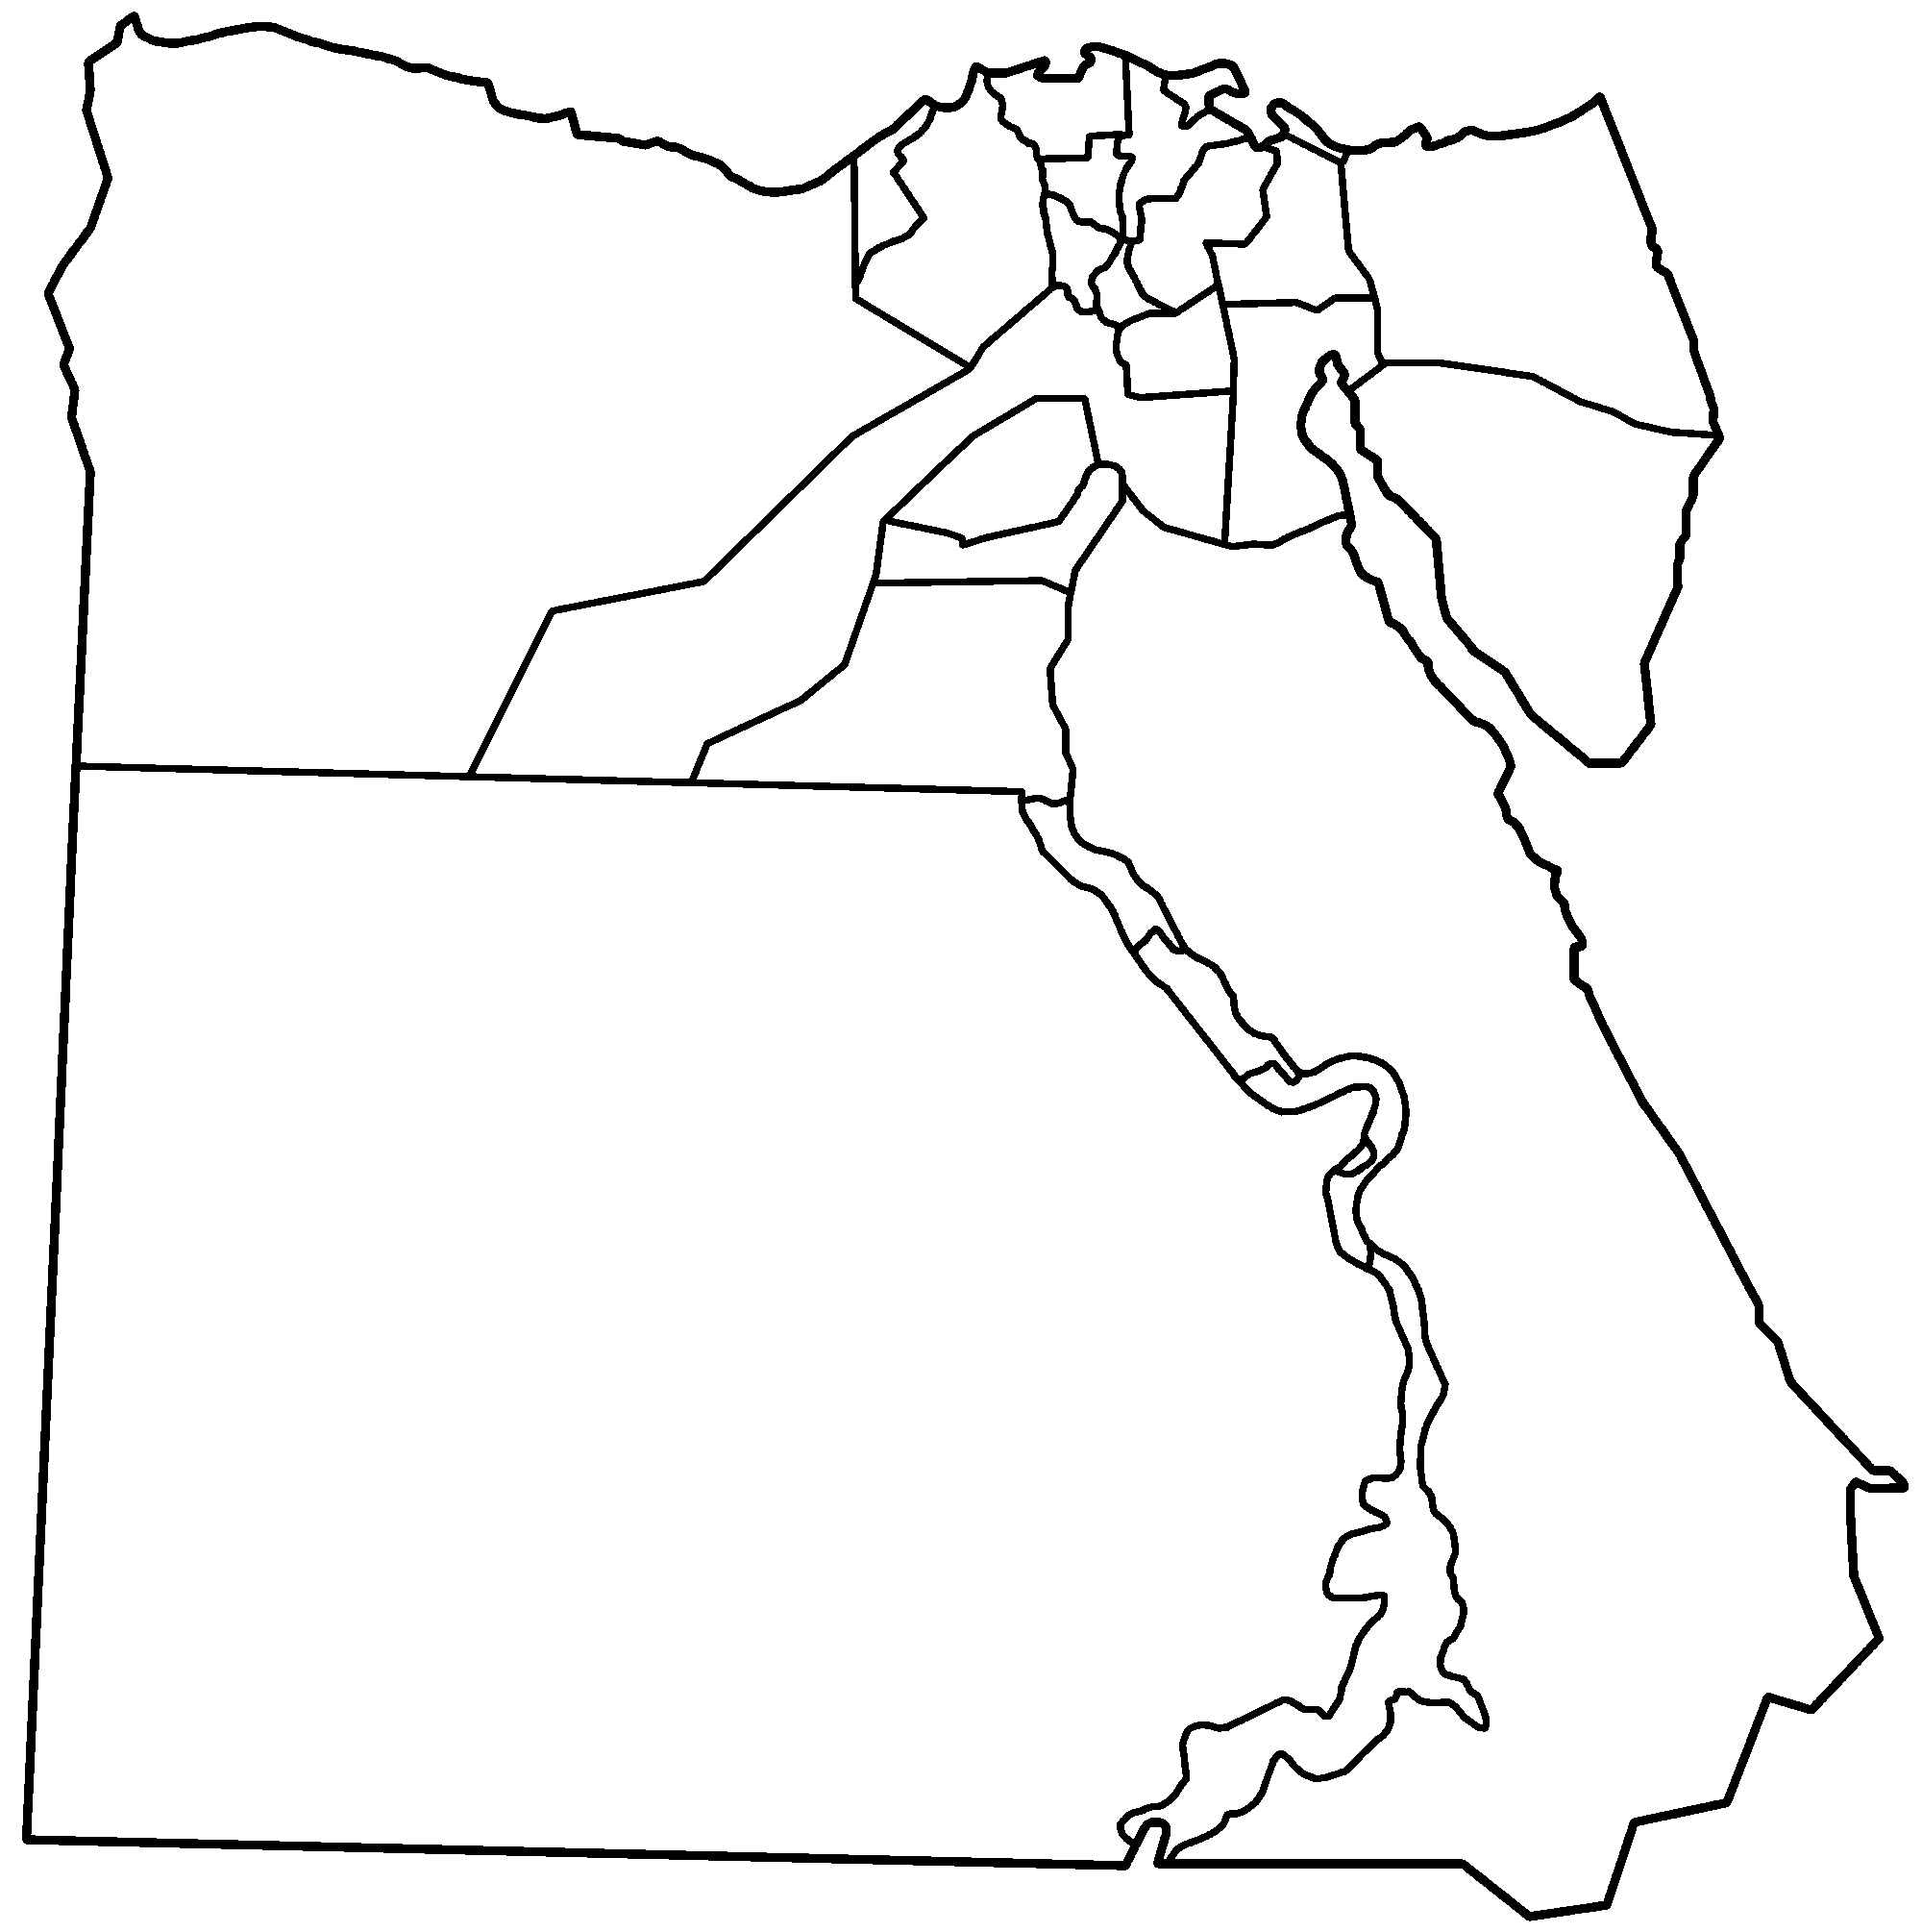 Egypt Governorates Blank • Mapsof.net